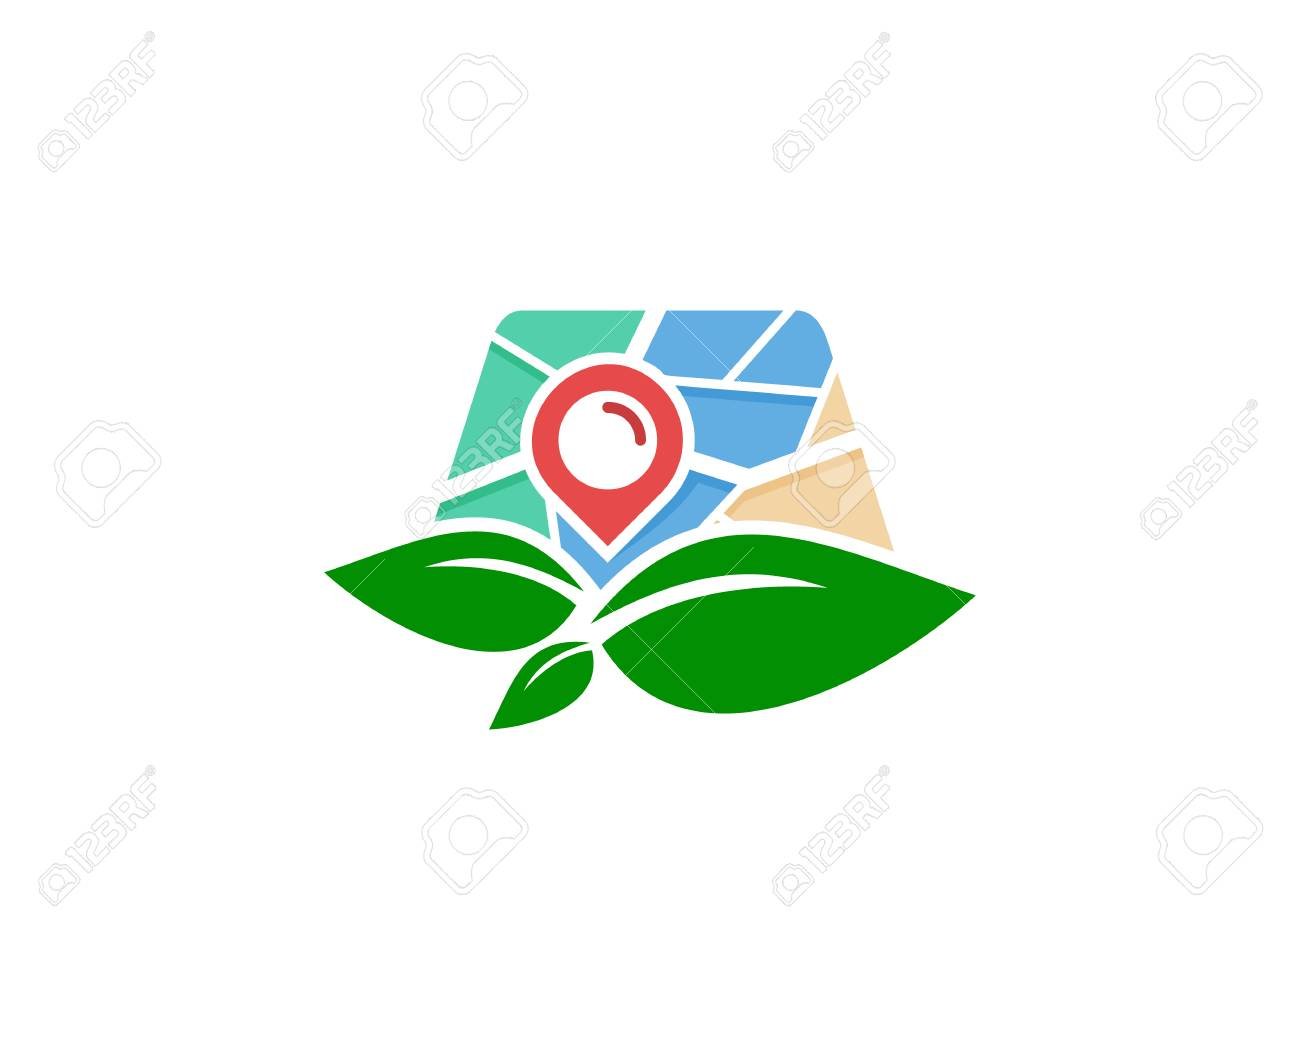 Eco Map Logo Icon Design Royalty Free Cliparts Vectors And Stock Illustration Image 101703164